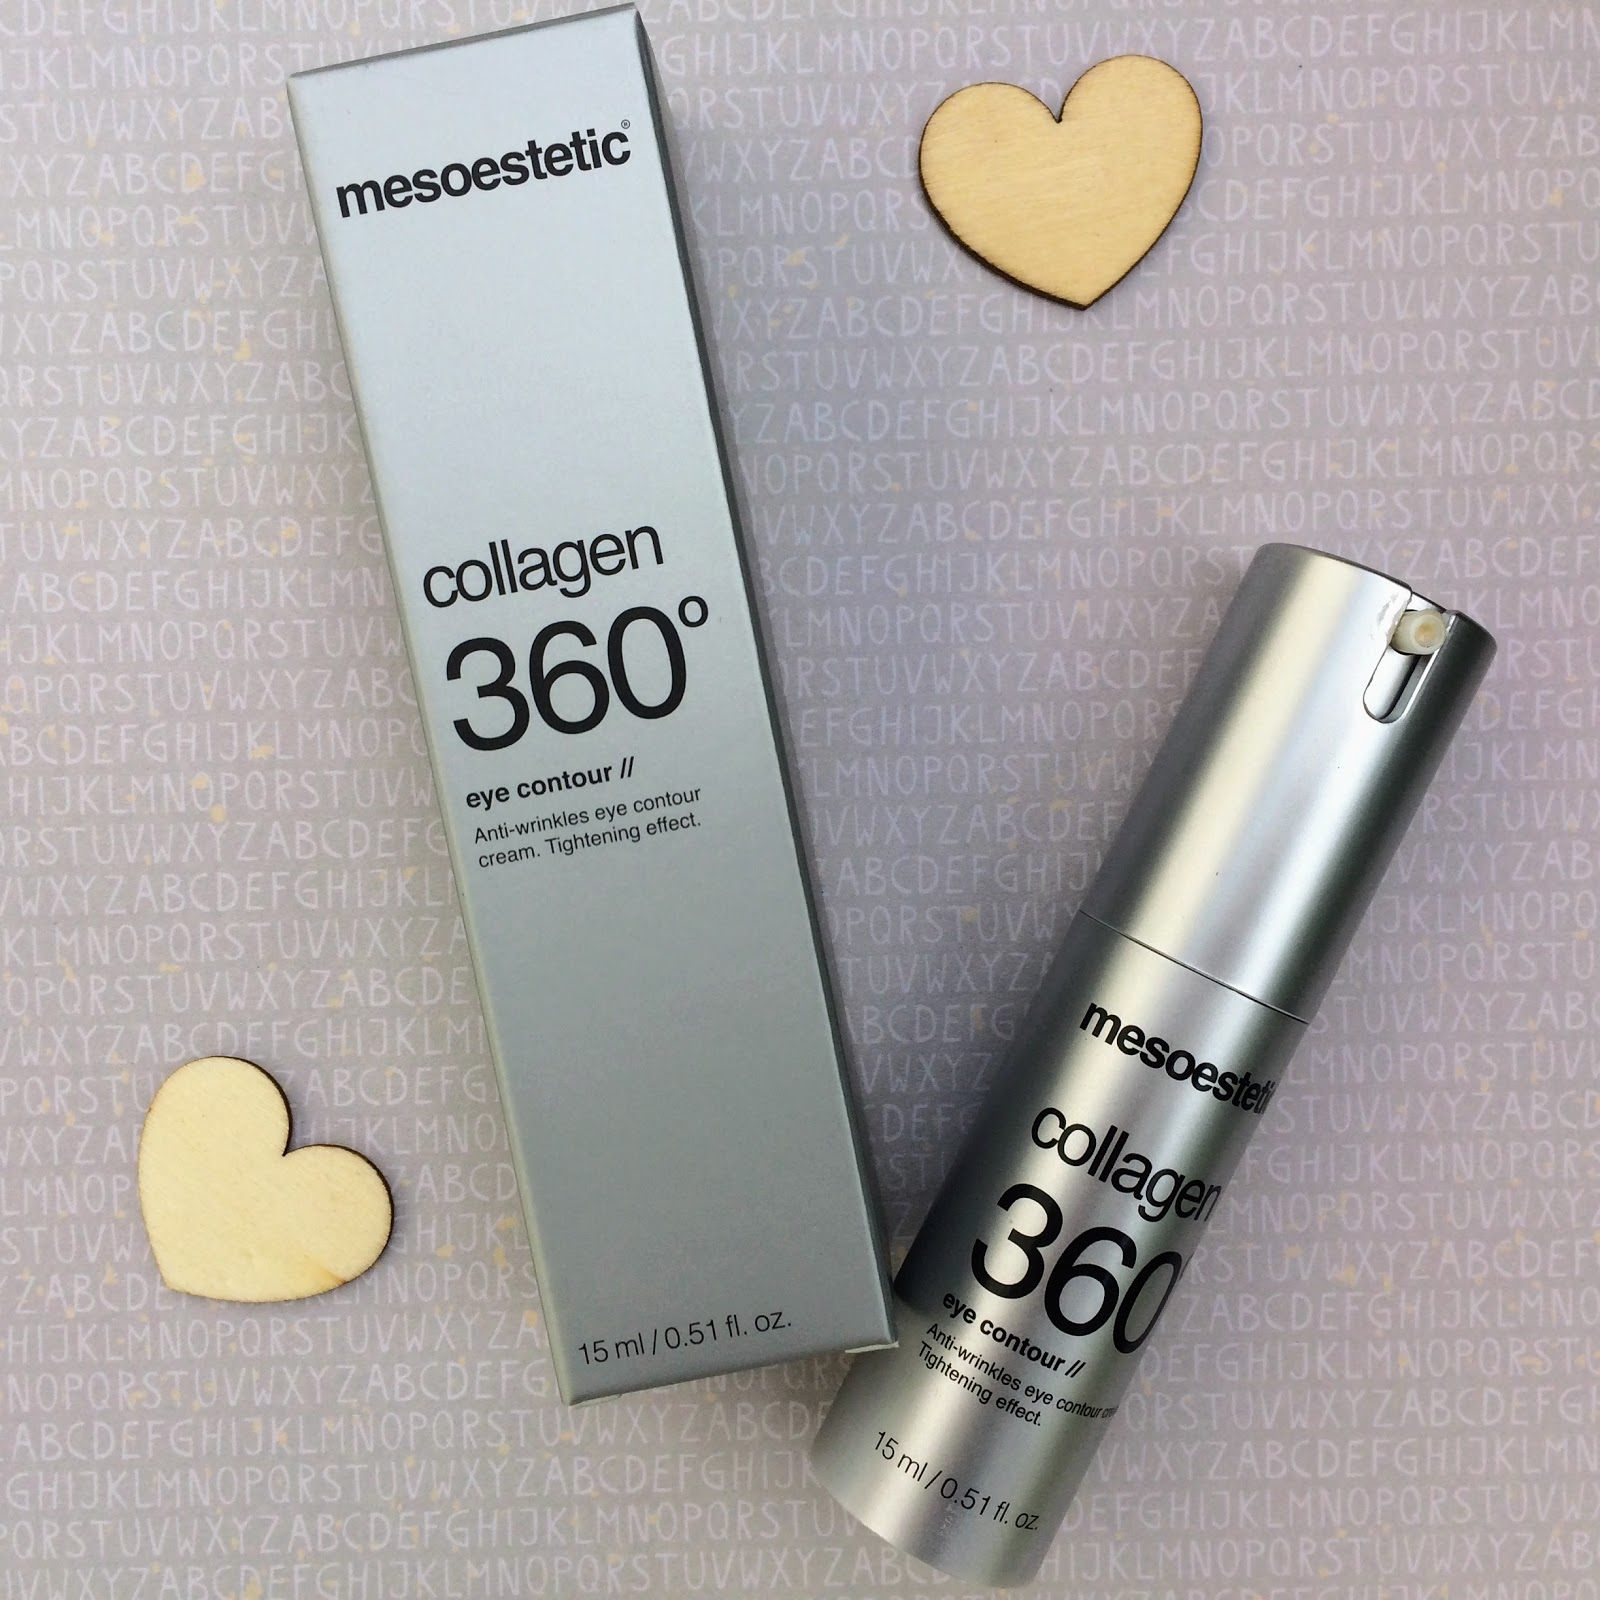 Mesoestetic collagen 360 eye cream